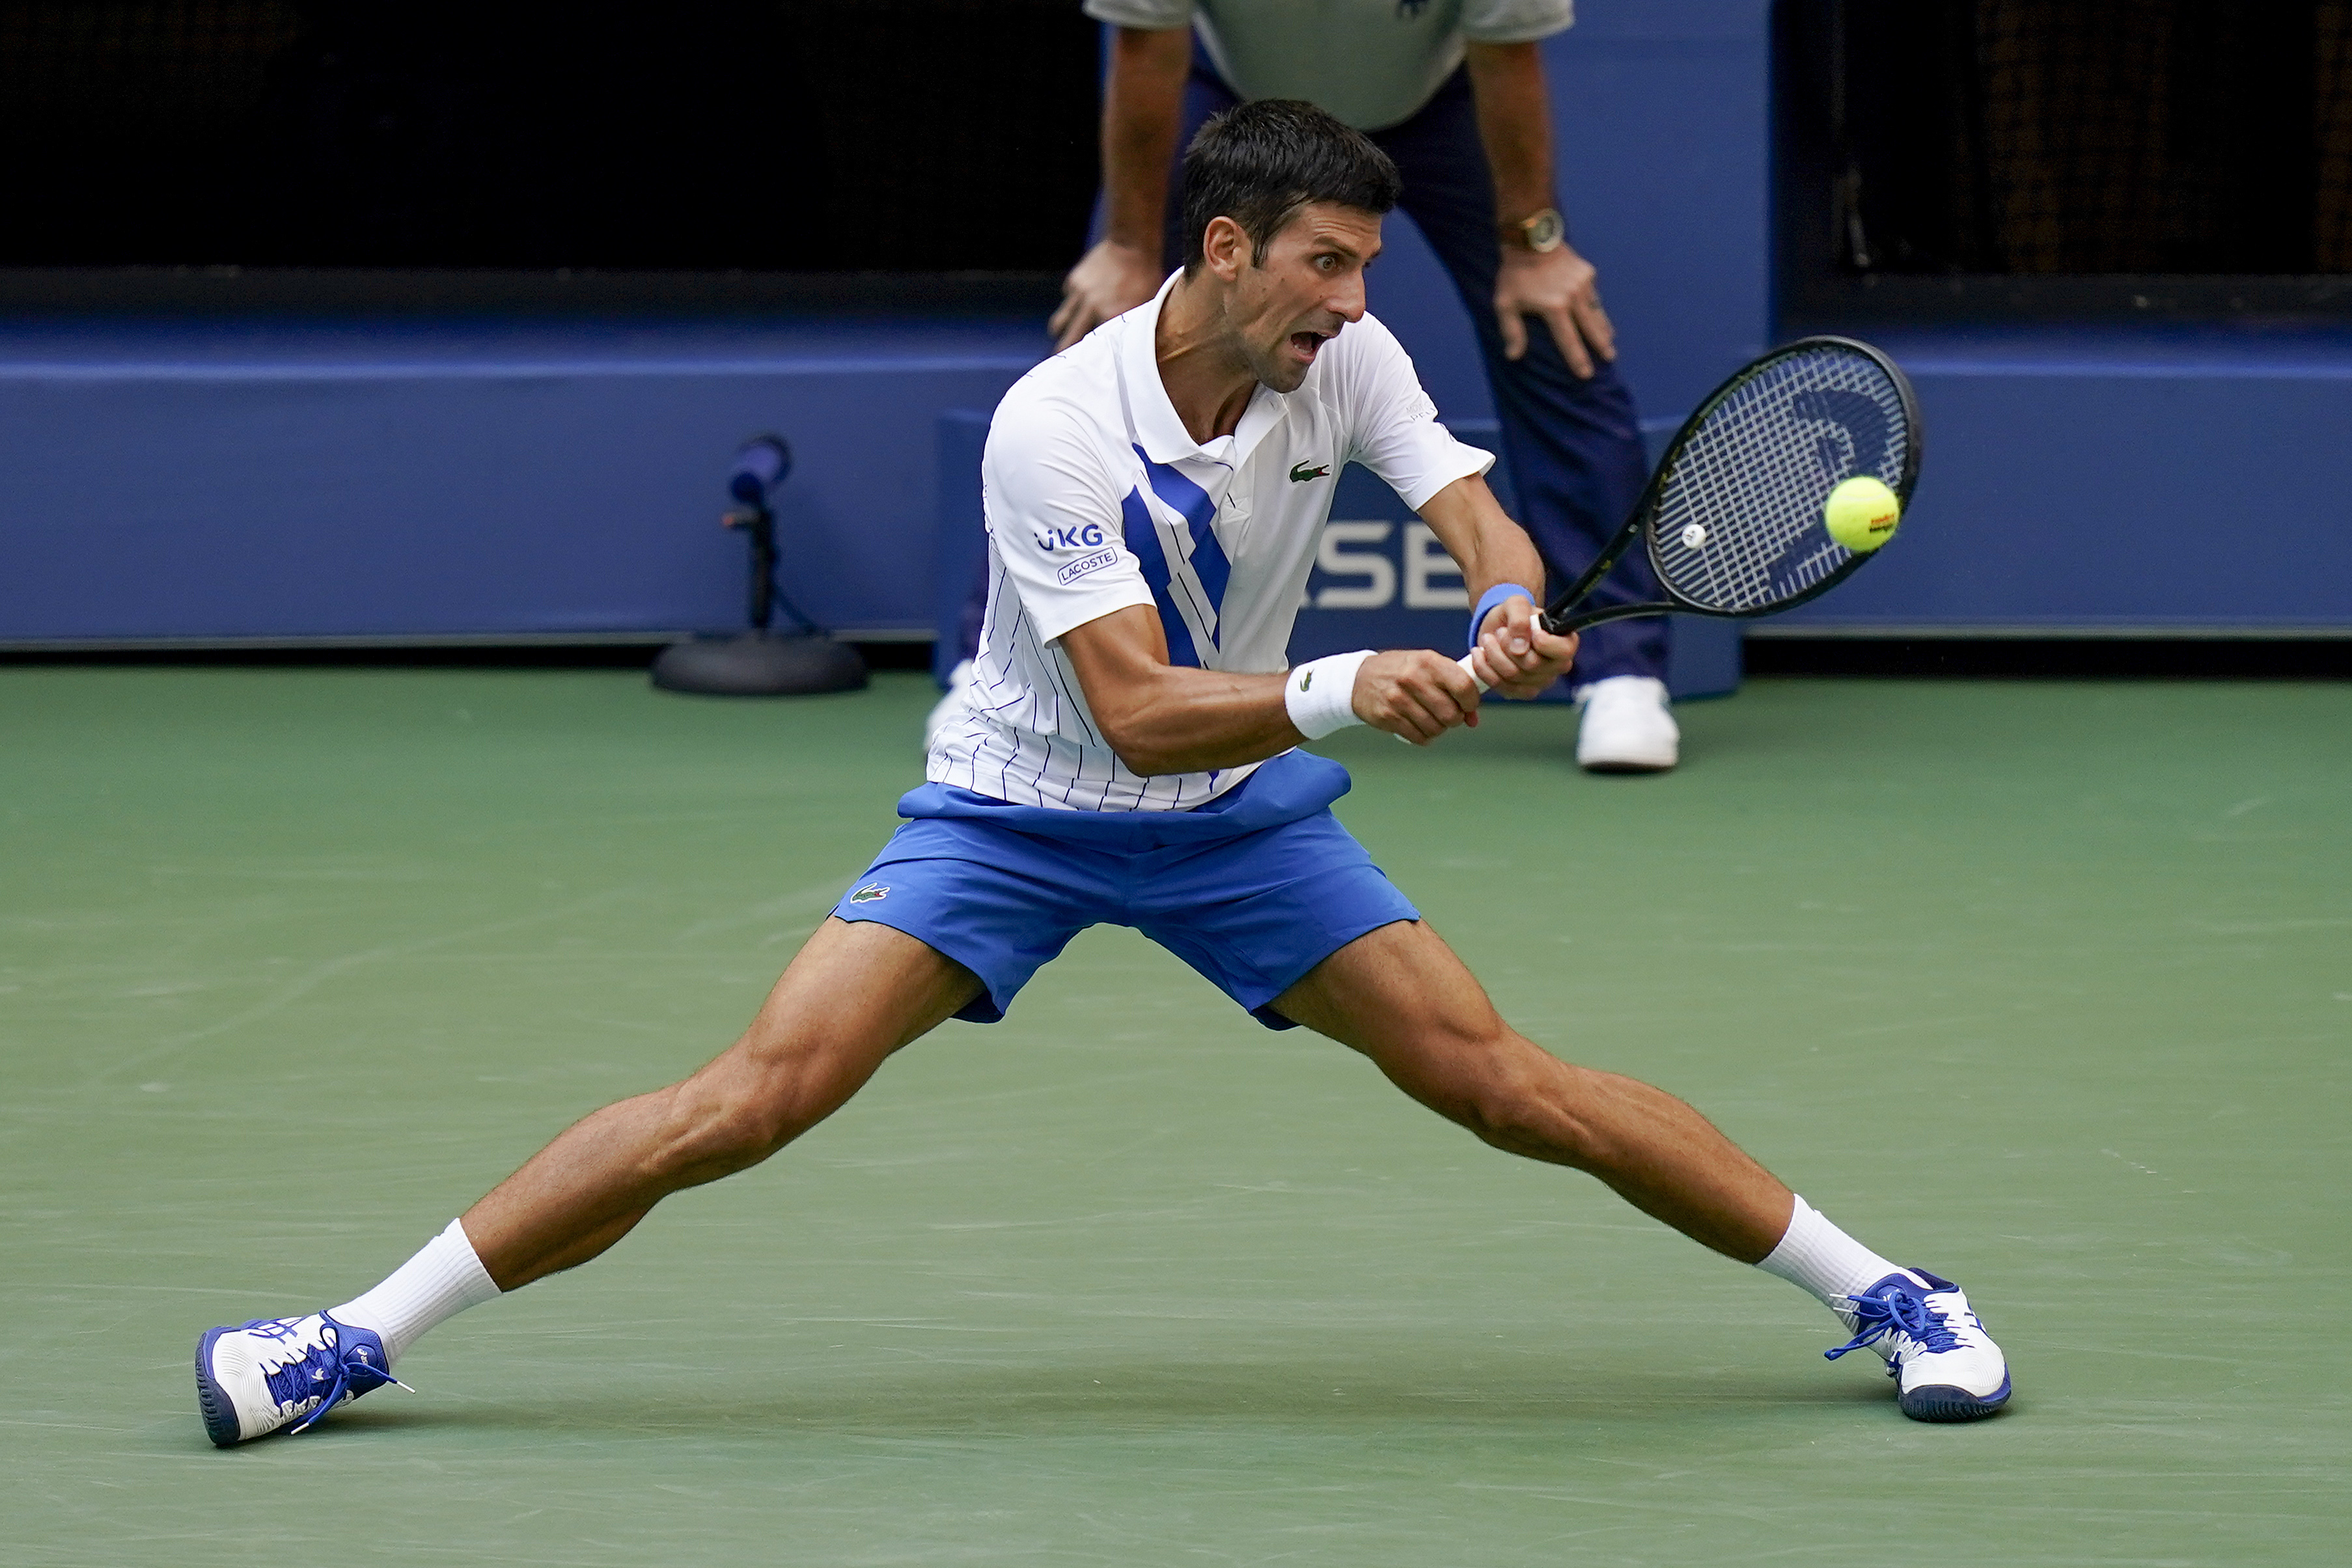 Djokovic Out Of Us Open After Hitting Line Judge With Ball Cbs 42